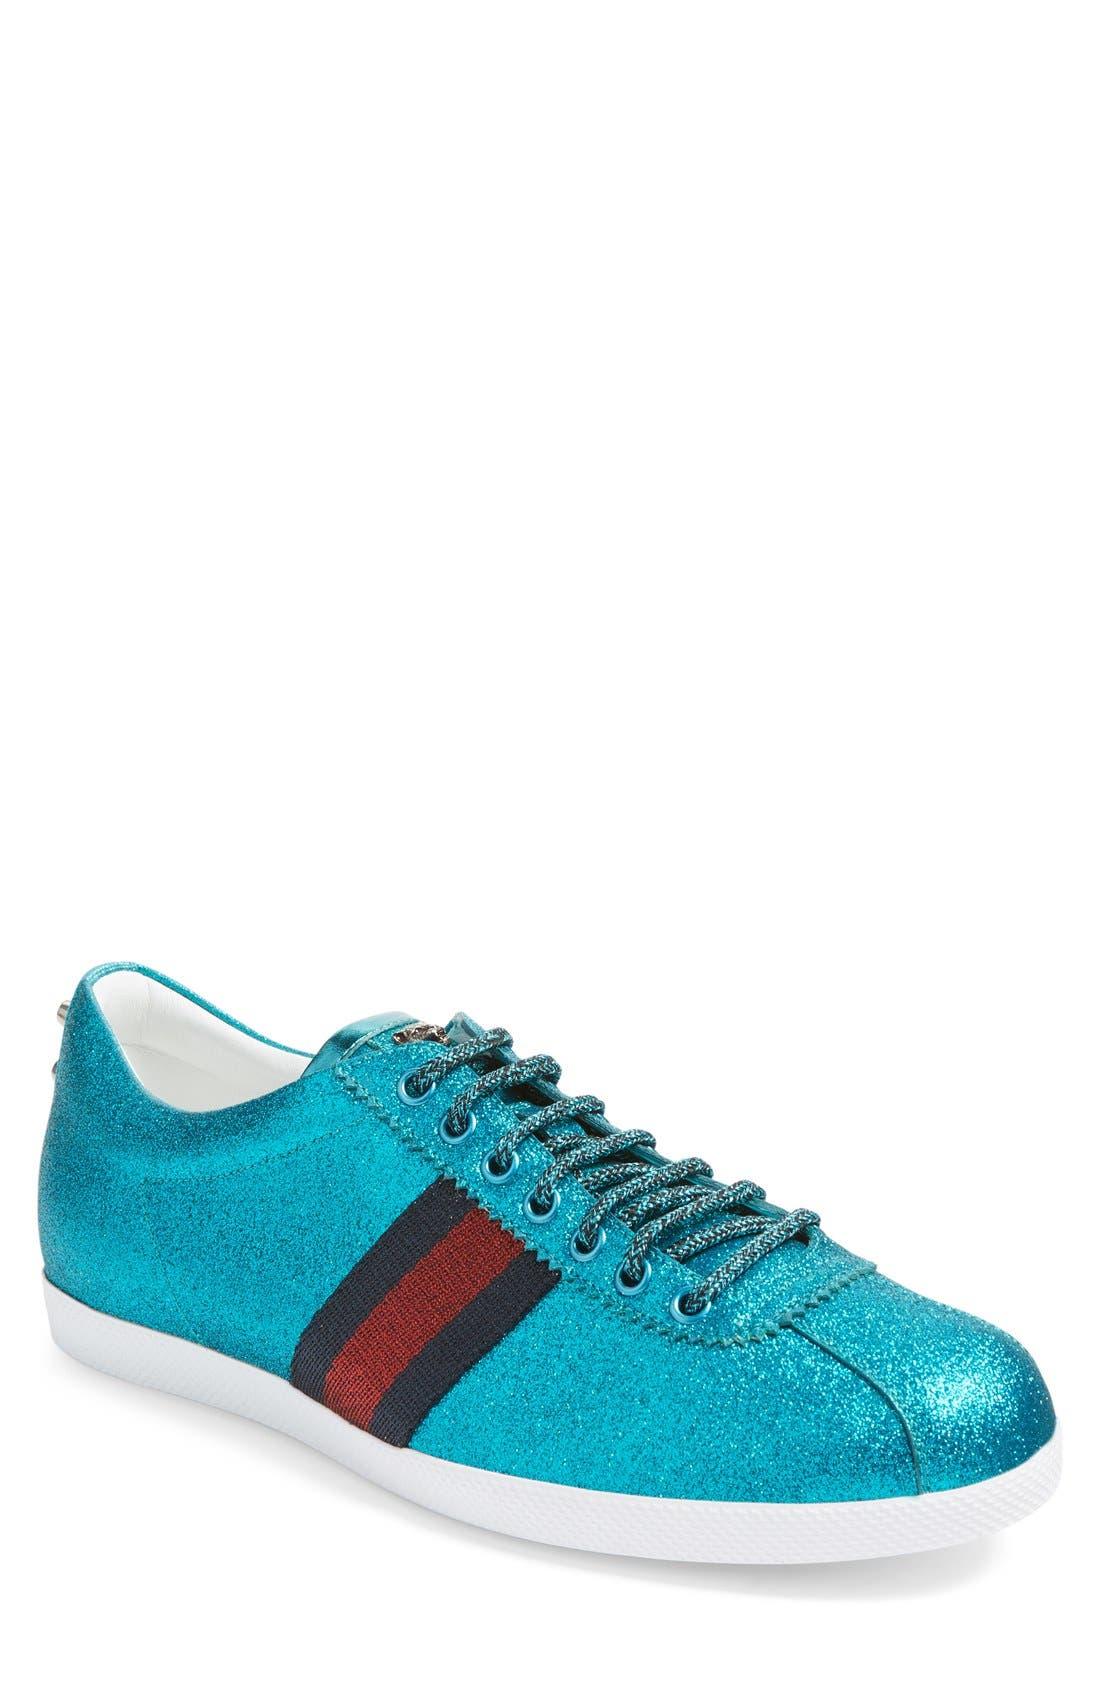 Bambi Lace-Up Sneaker,                         Main,                         color, Green